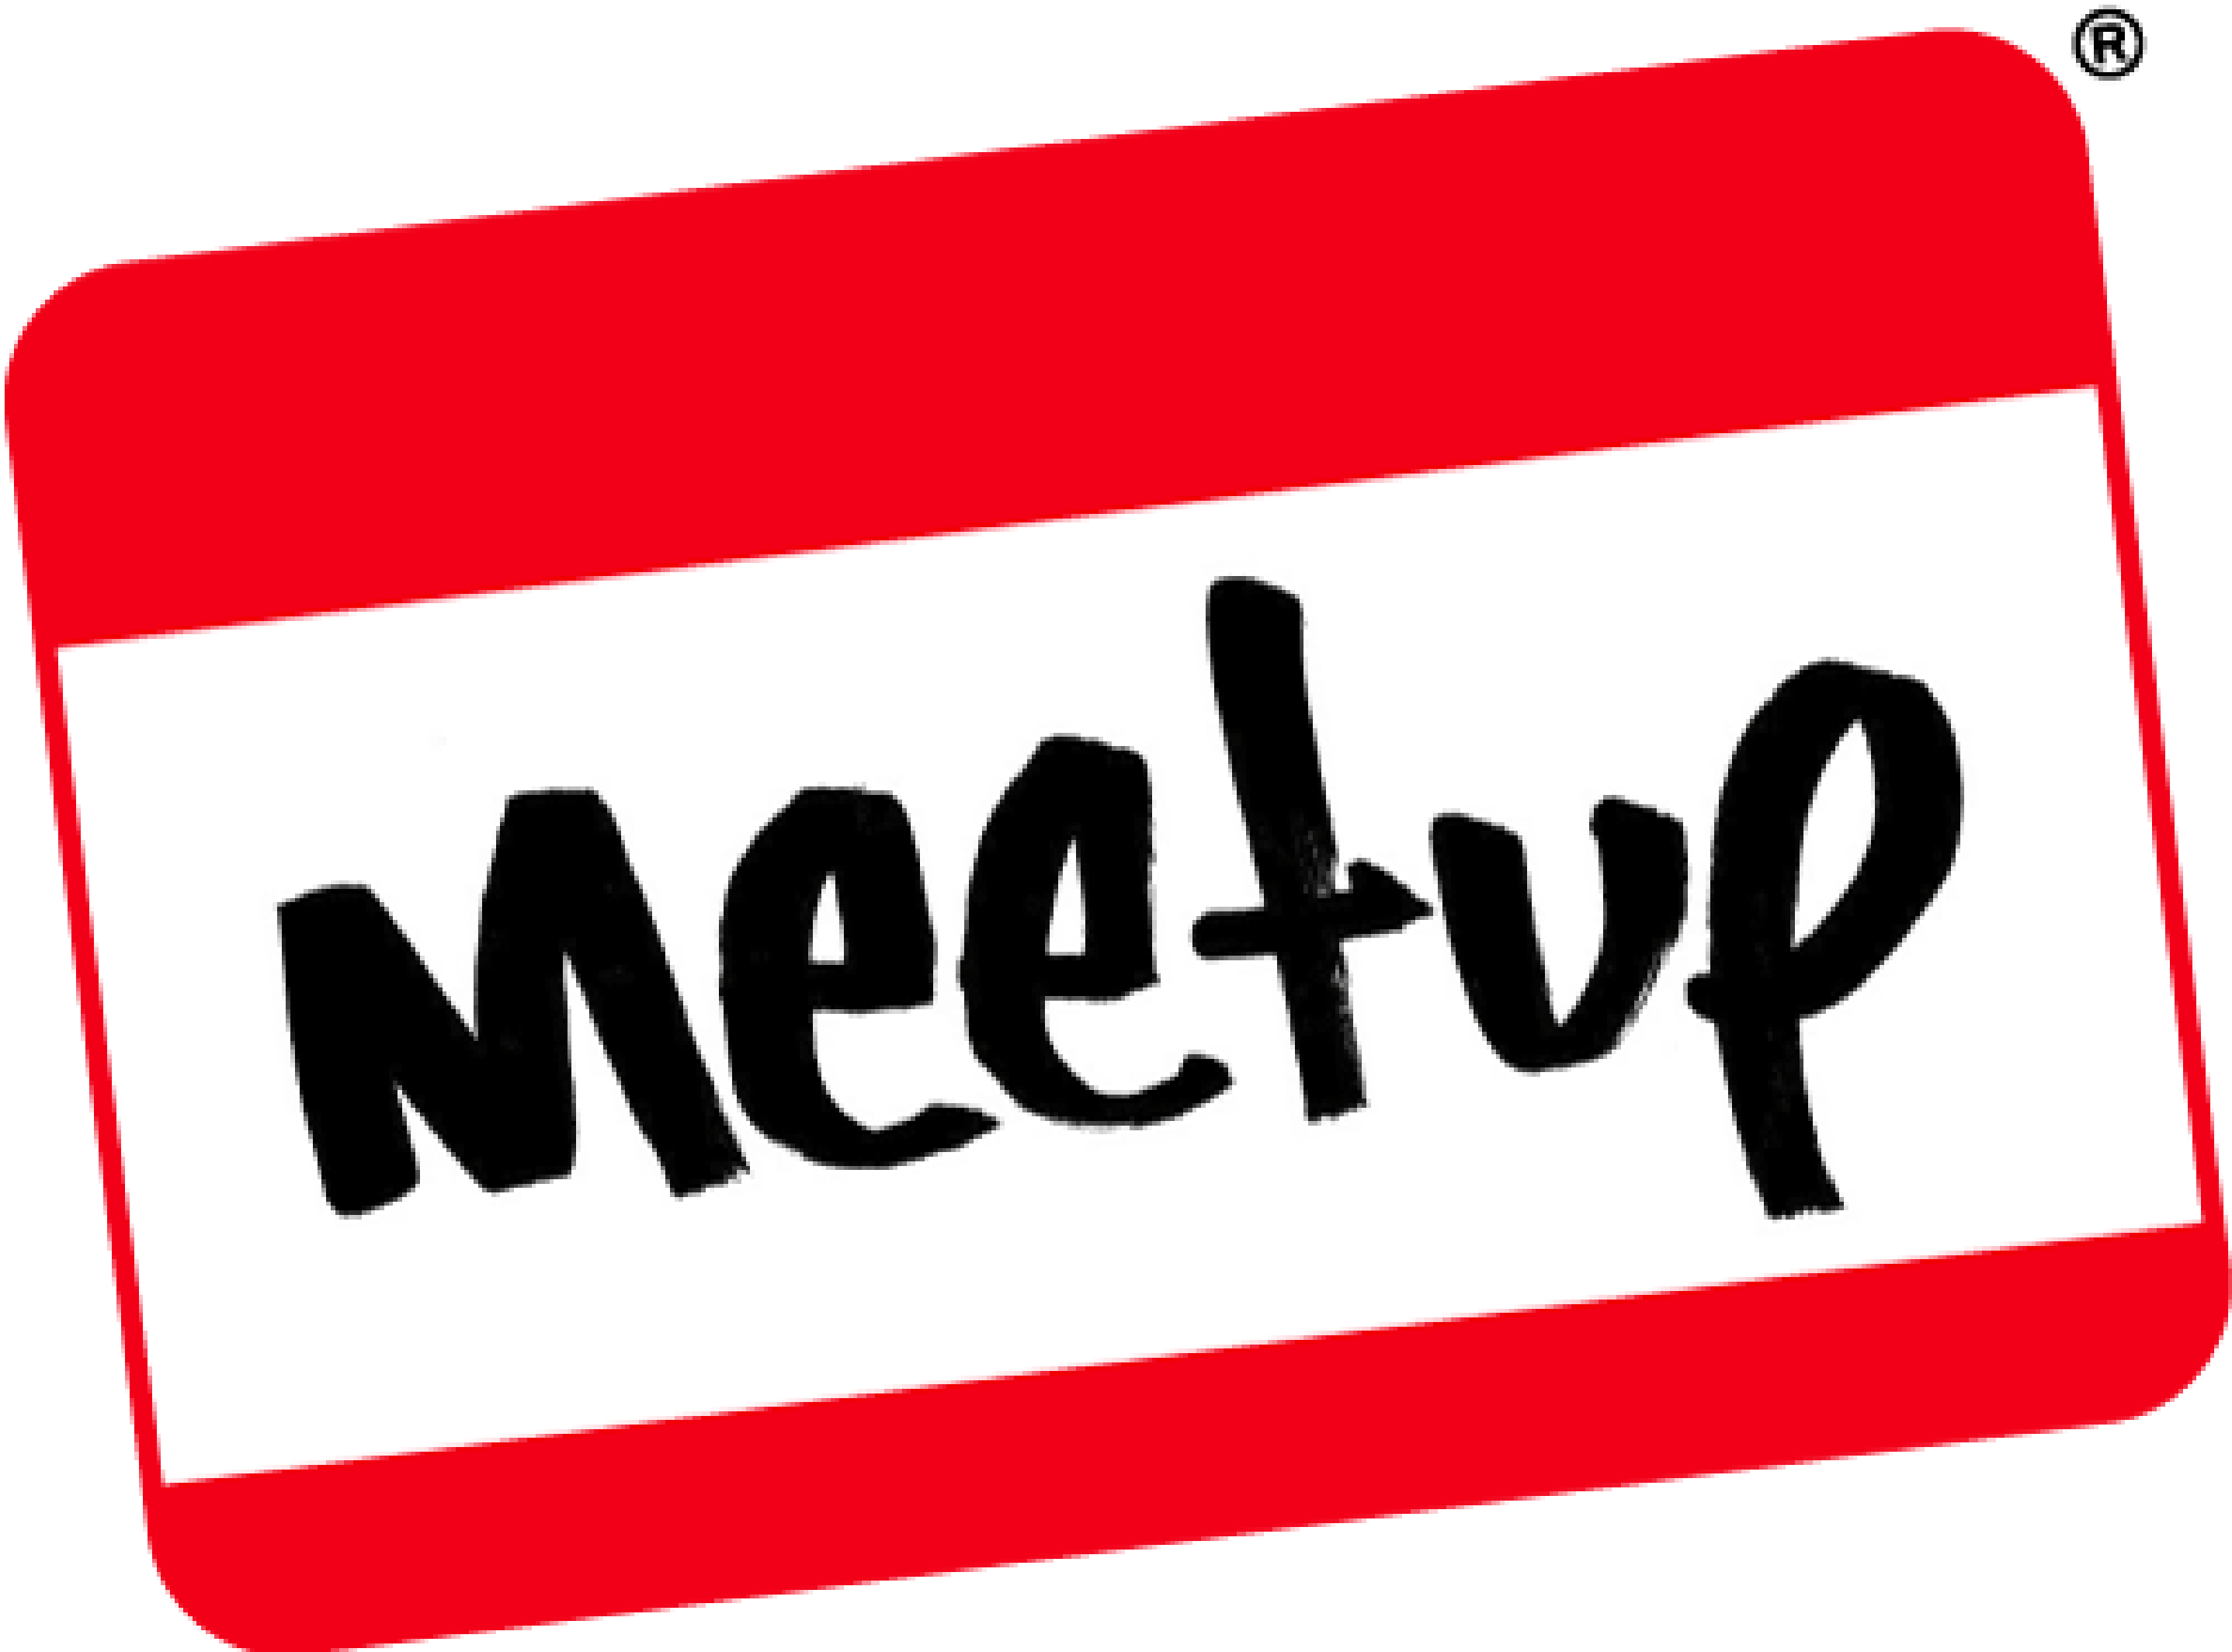 Meetup dating toronto